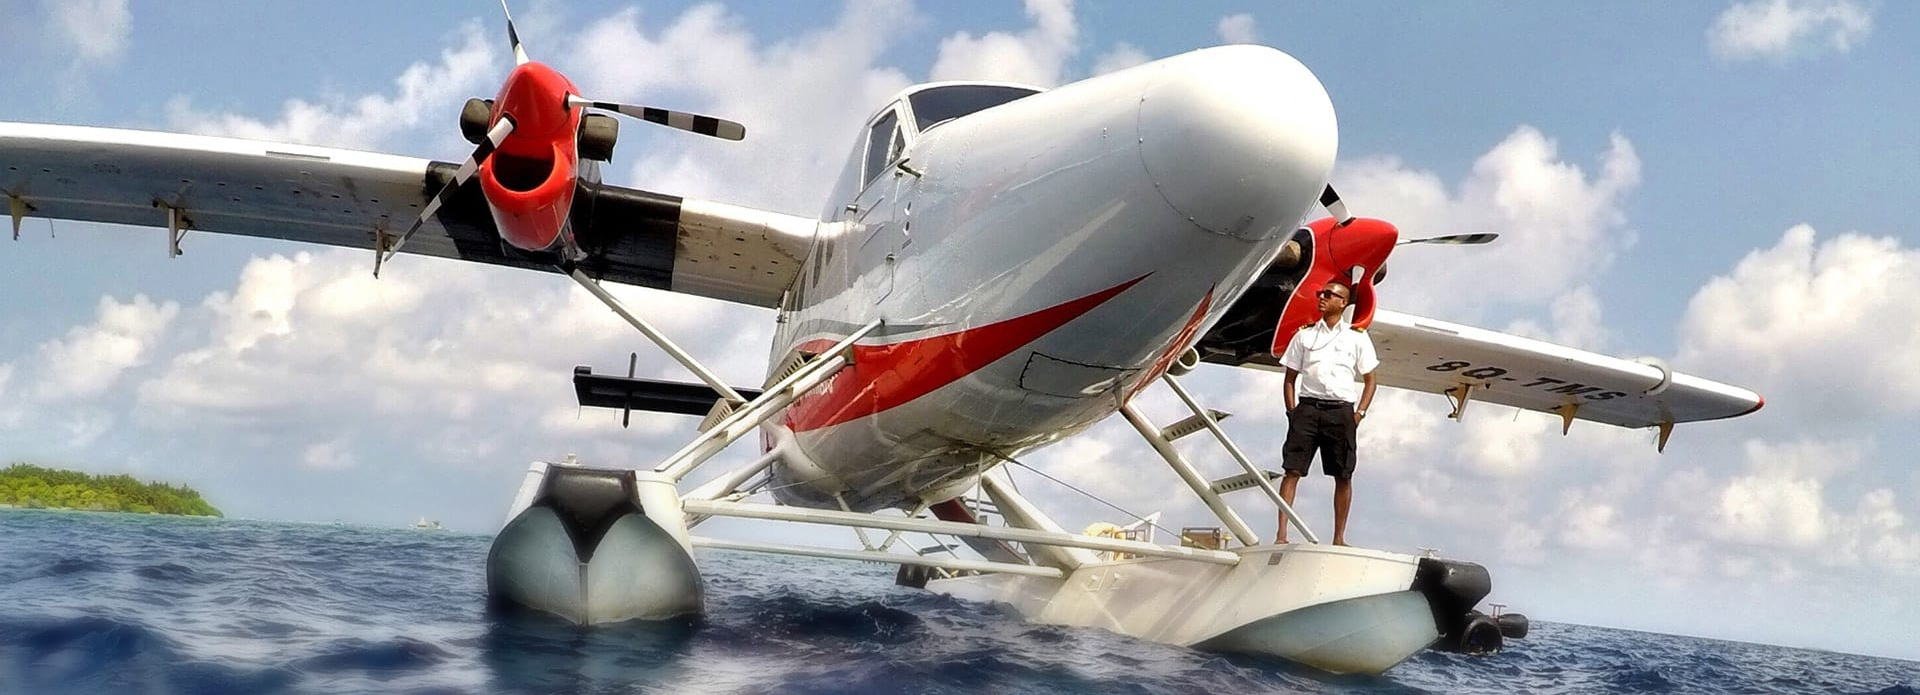 Viking Air float plane on water